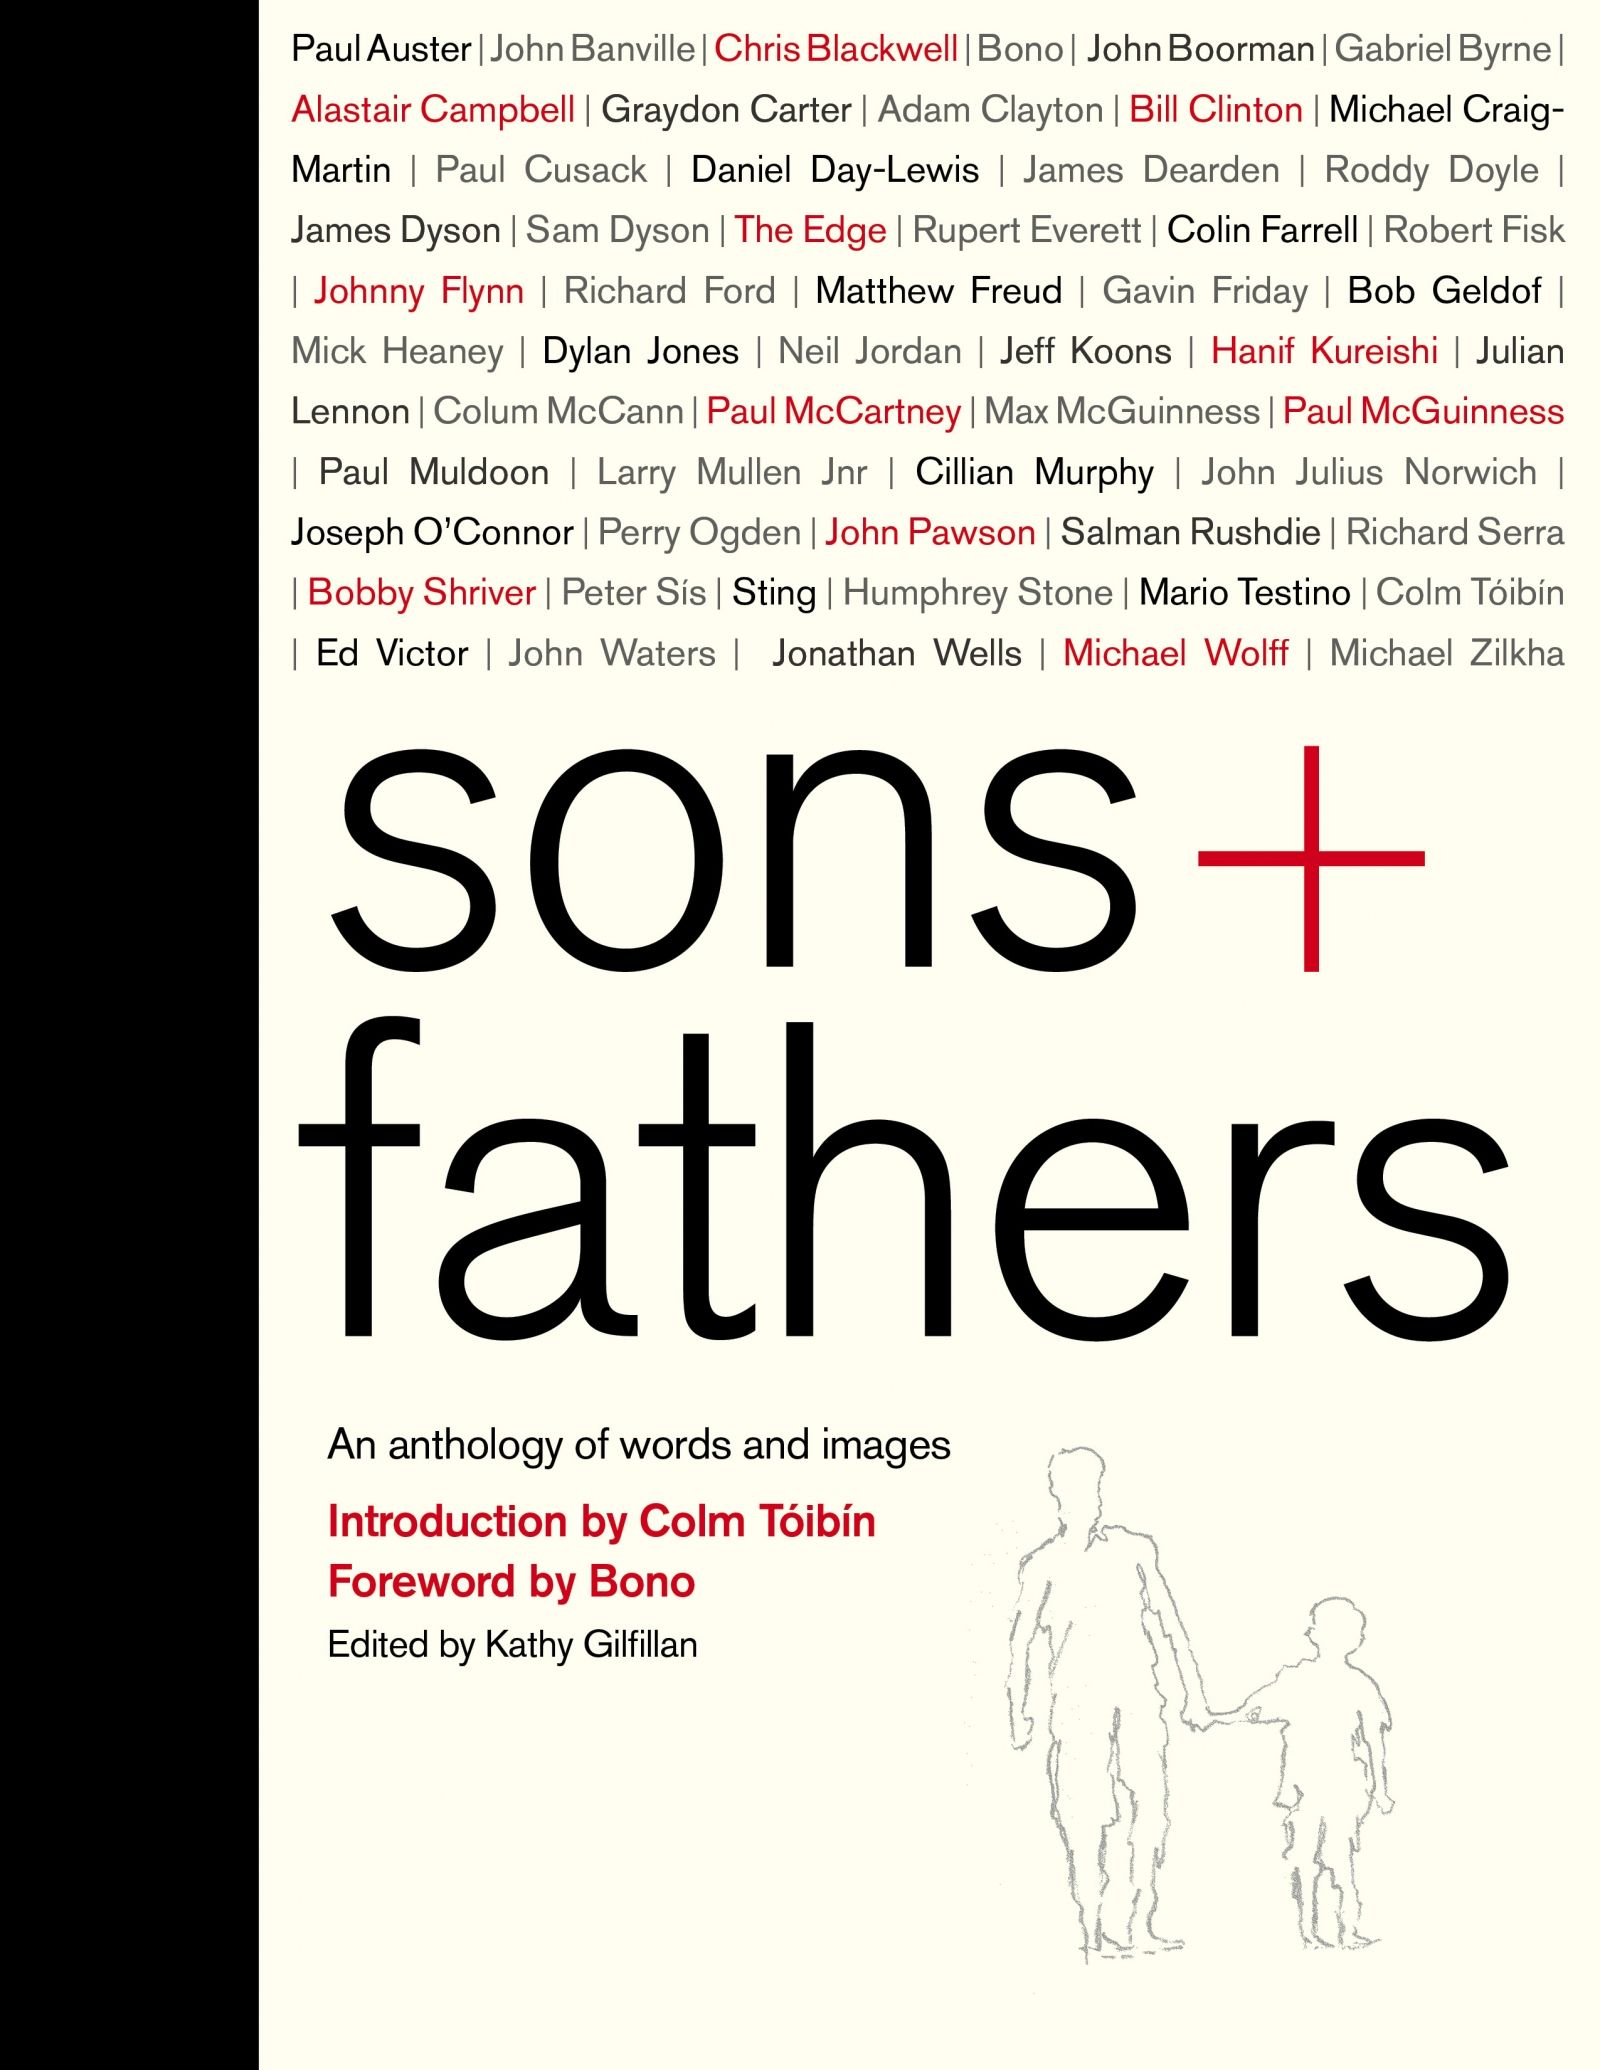 sons-fathers-by-various